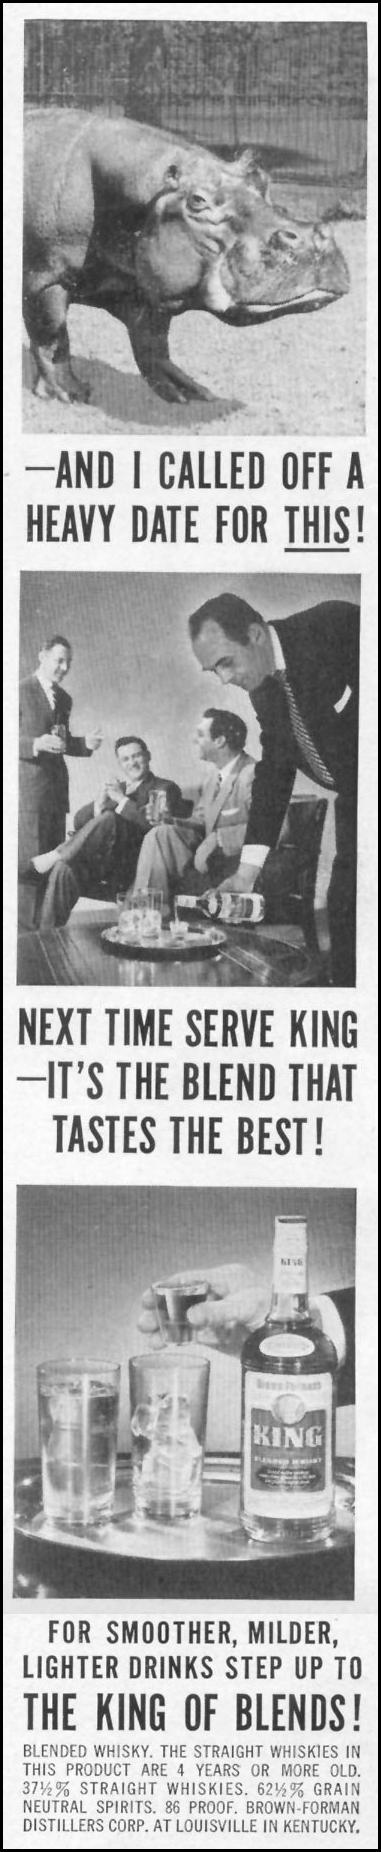 KING BLENDED WHISKY LIFE 10/13/1952 p. 89